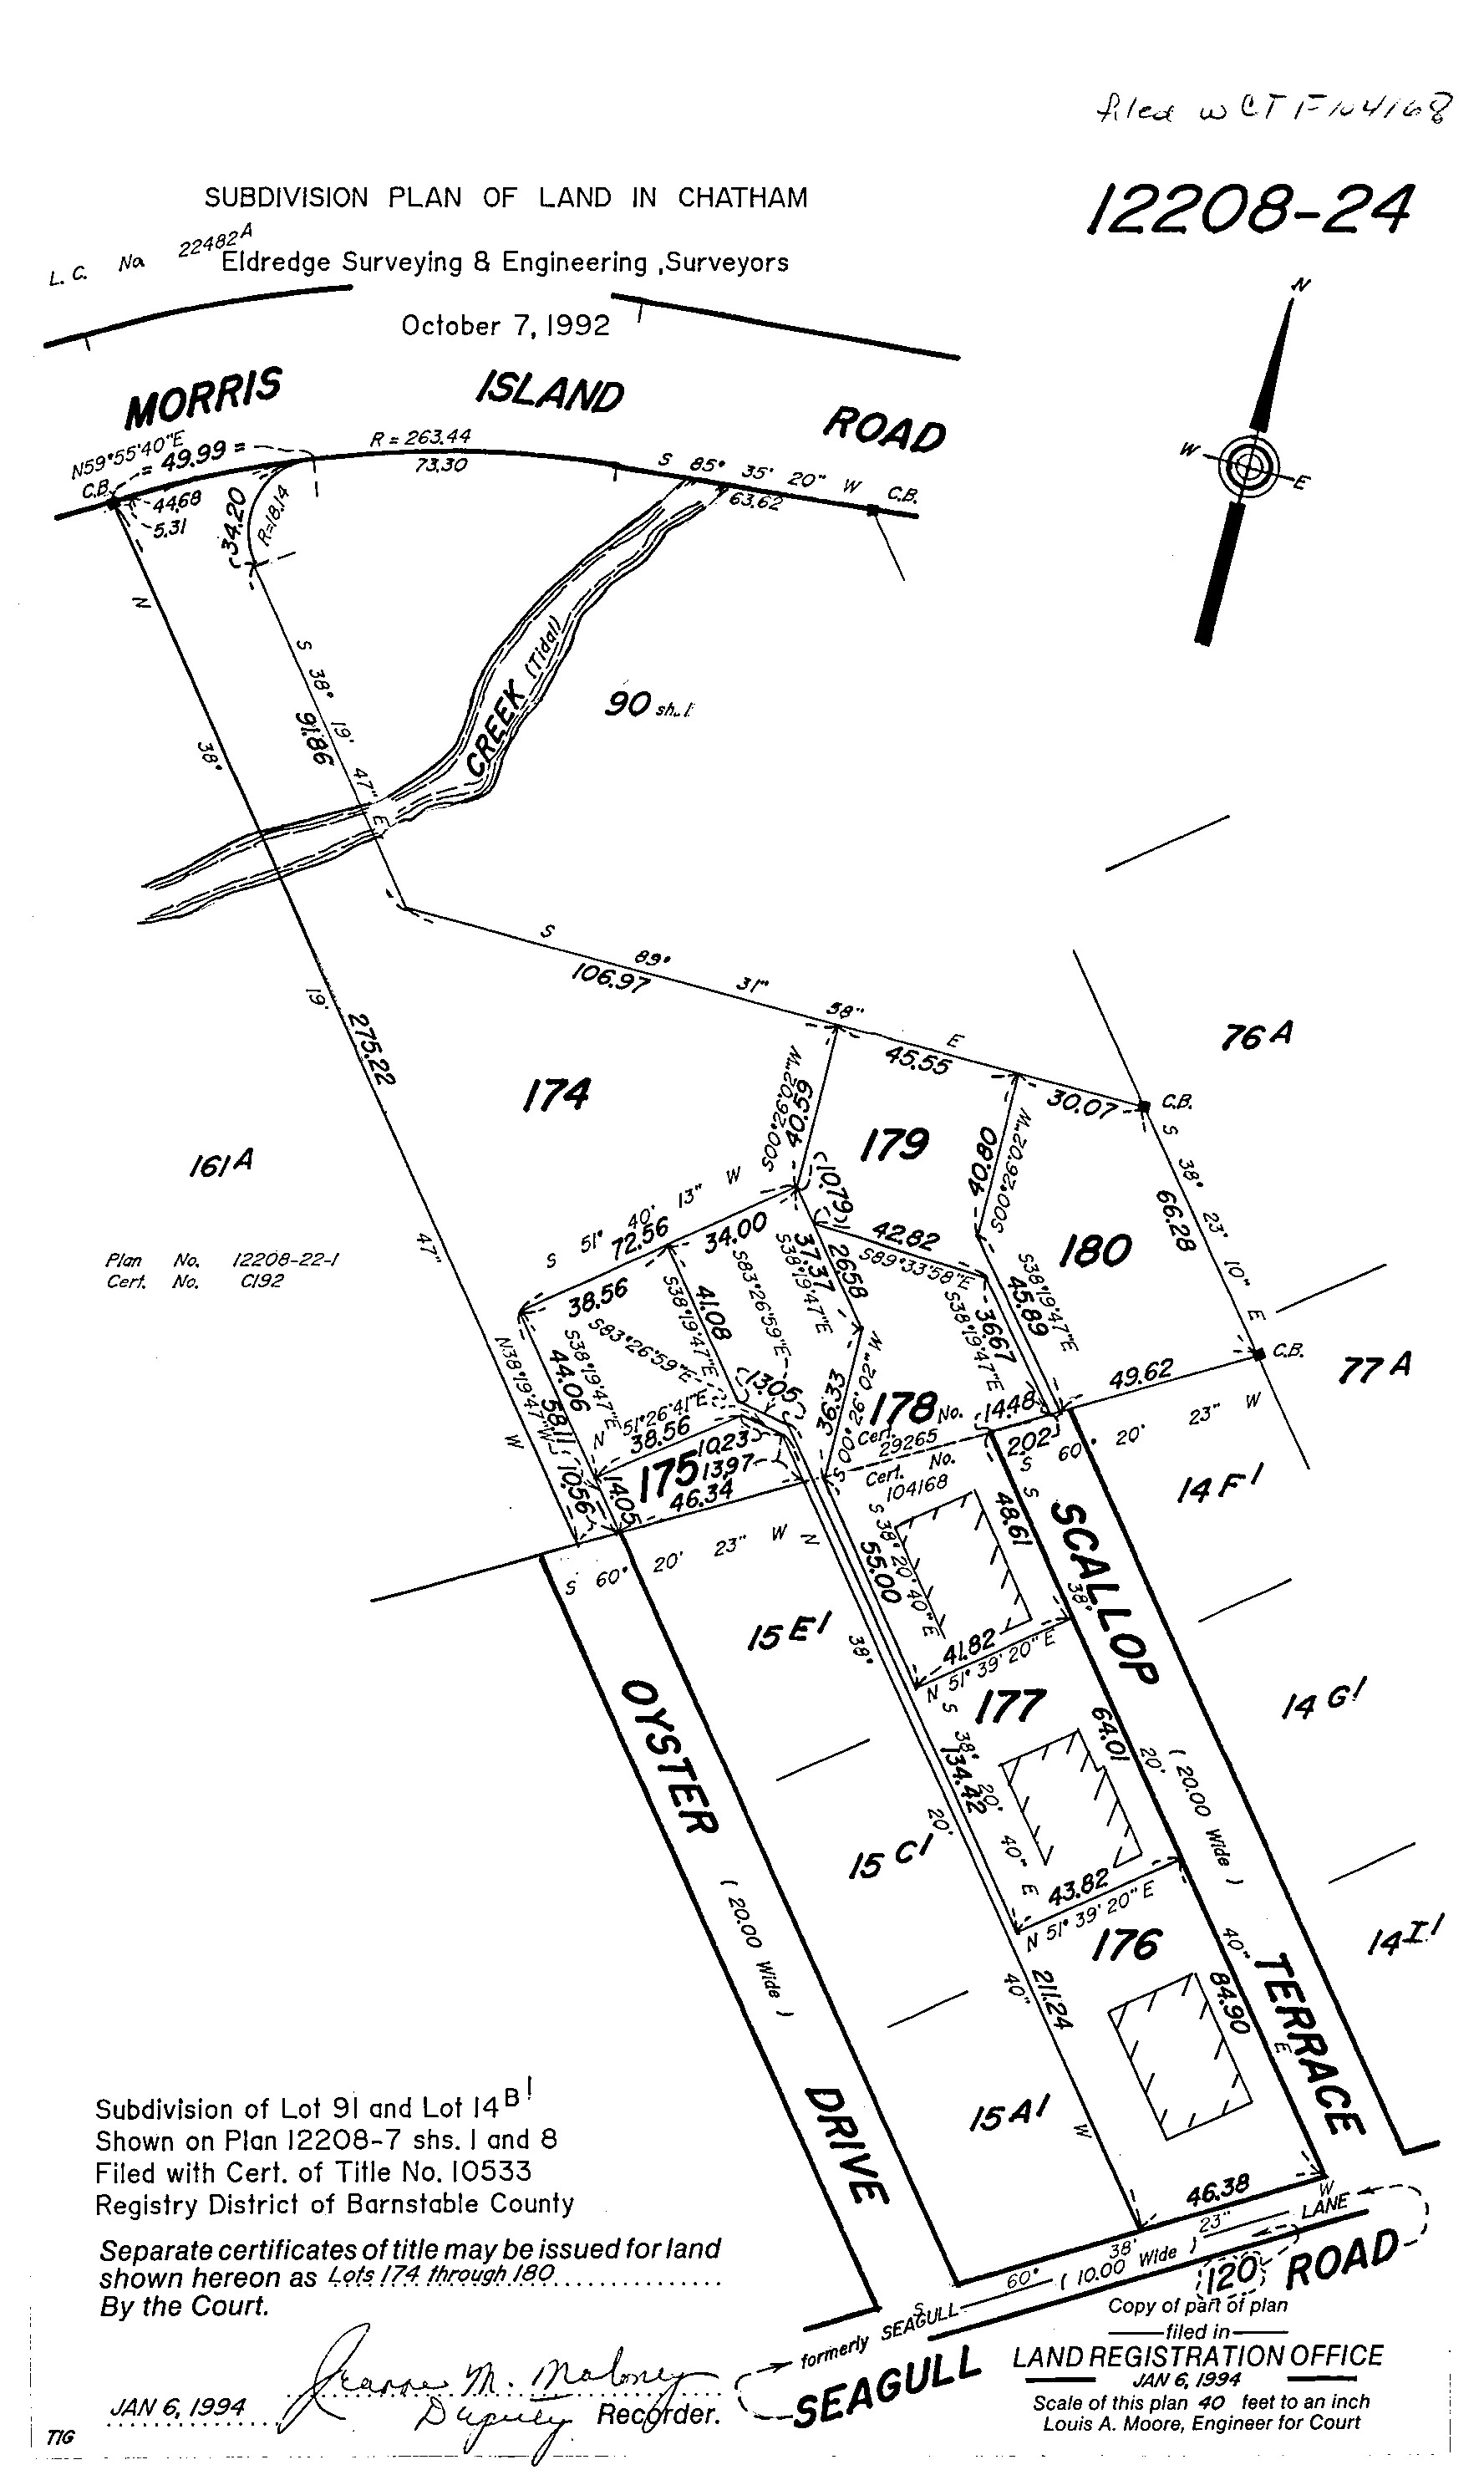 """The property line was questioned as the owner of Lot 177 was under the impression that the boundaries follow the historic use of the parking. The owner of Lot 177 has traditionally used a space located on Lot 176. This """"gentleman's agreement"""" is proposed to carry forward. The current certificates of title for both properties can be viewed below:  Lot 176 - Certificate of Title 213721   Lot 177 - Certificate of Title 188830  Both Certificates refer to the lots depicted on Land Court Plan 12207-24 which is provided above. The common boundary is extremely close to the house on Lot 177 just as the boundary between Lot 177 and Lot 178 is extremely close to the house on Lot 178.  The infrastructure is undersized for the 6 properties as there are only 10 parking spaces where 12 are required under zoning. Fortunately there has been a trend of neighborly peace and longstanding traditions of allowed and accepted uses that do not follow the boundaries. All too often we see the unfortunate greed of prohibiting others over the imaginary lines of ownership and it is inspiring to find neighbors who are truly neighborly."""